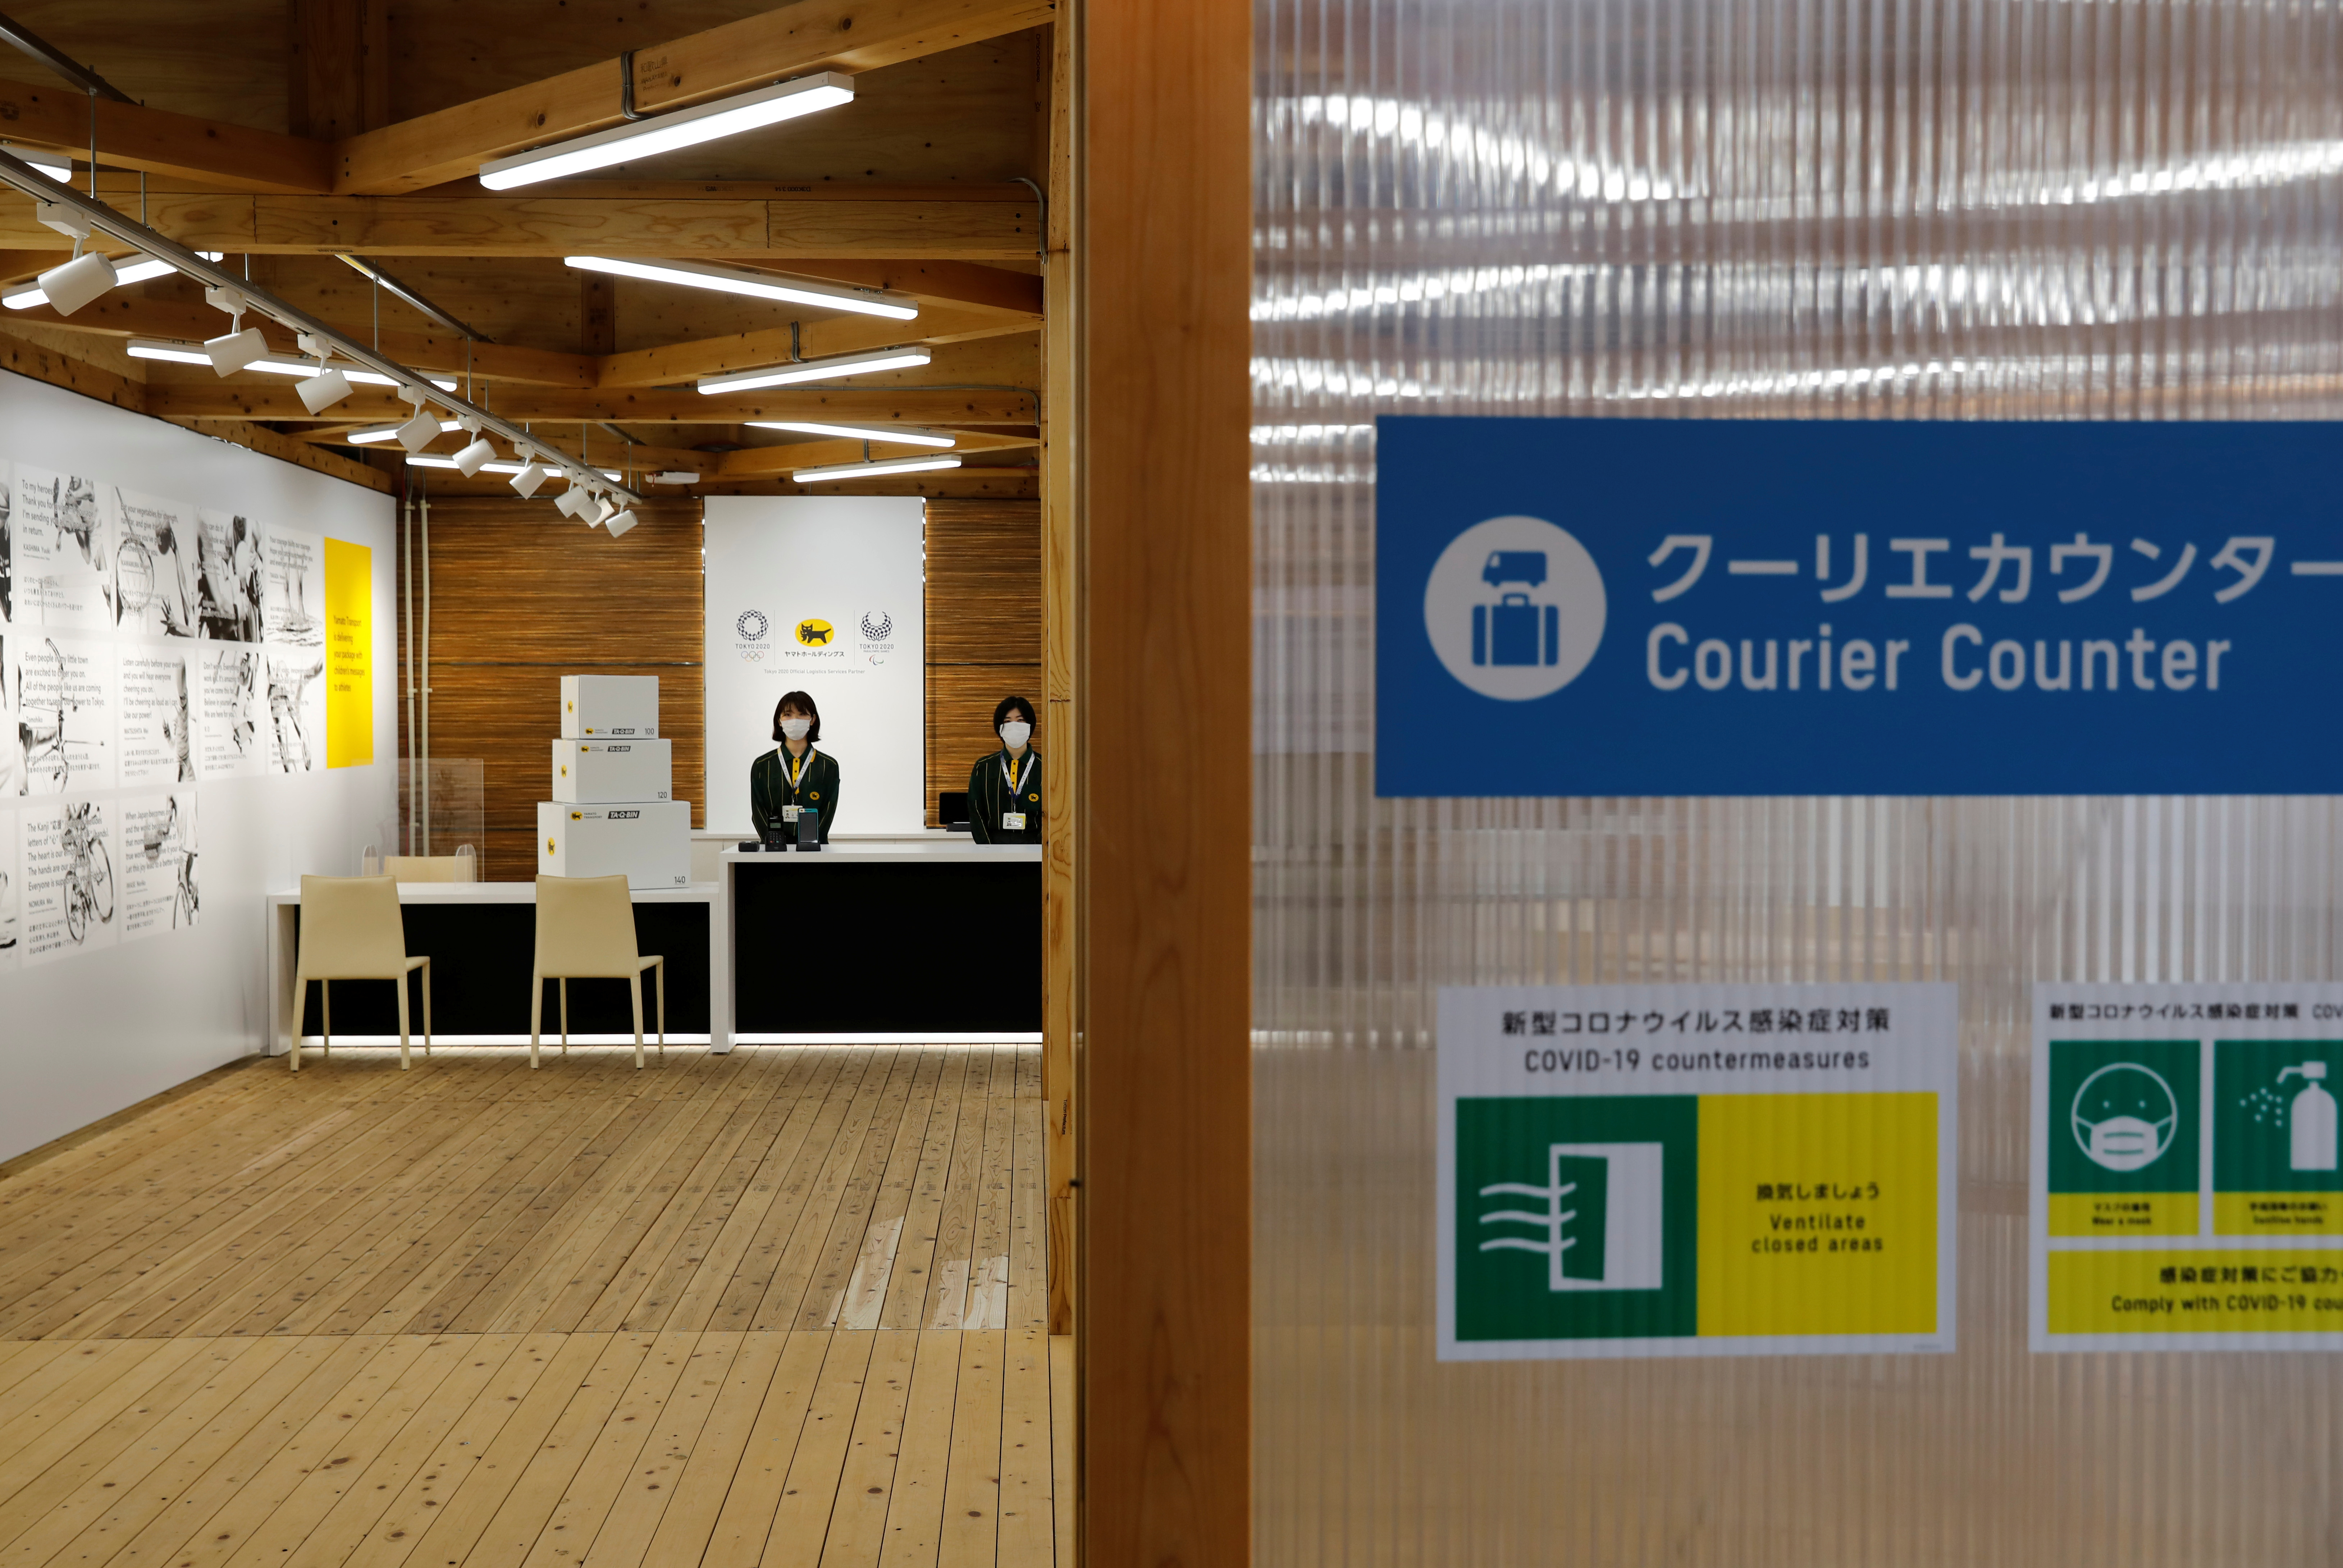 A courier counter at the village plaza of the Tokyo 2020 Olympic and Paralympic Village is pictured in Tokyo, Japan, June 20, 2021.   REUTERS/Kim Kyung-Hoon